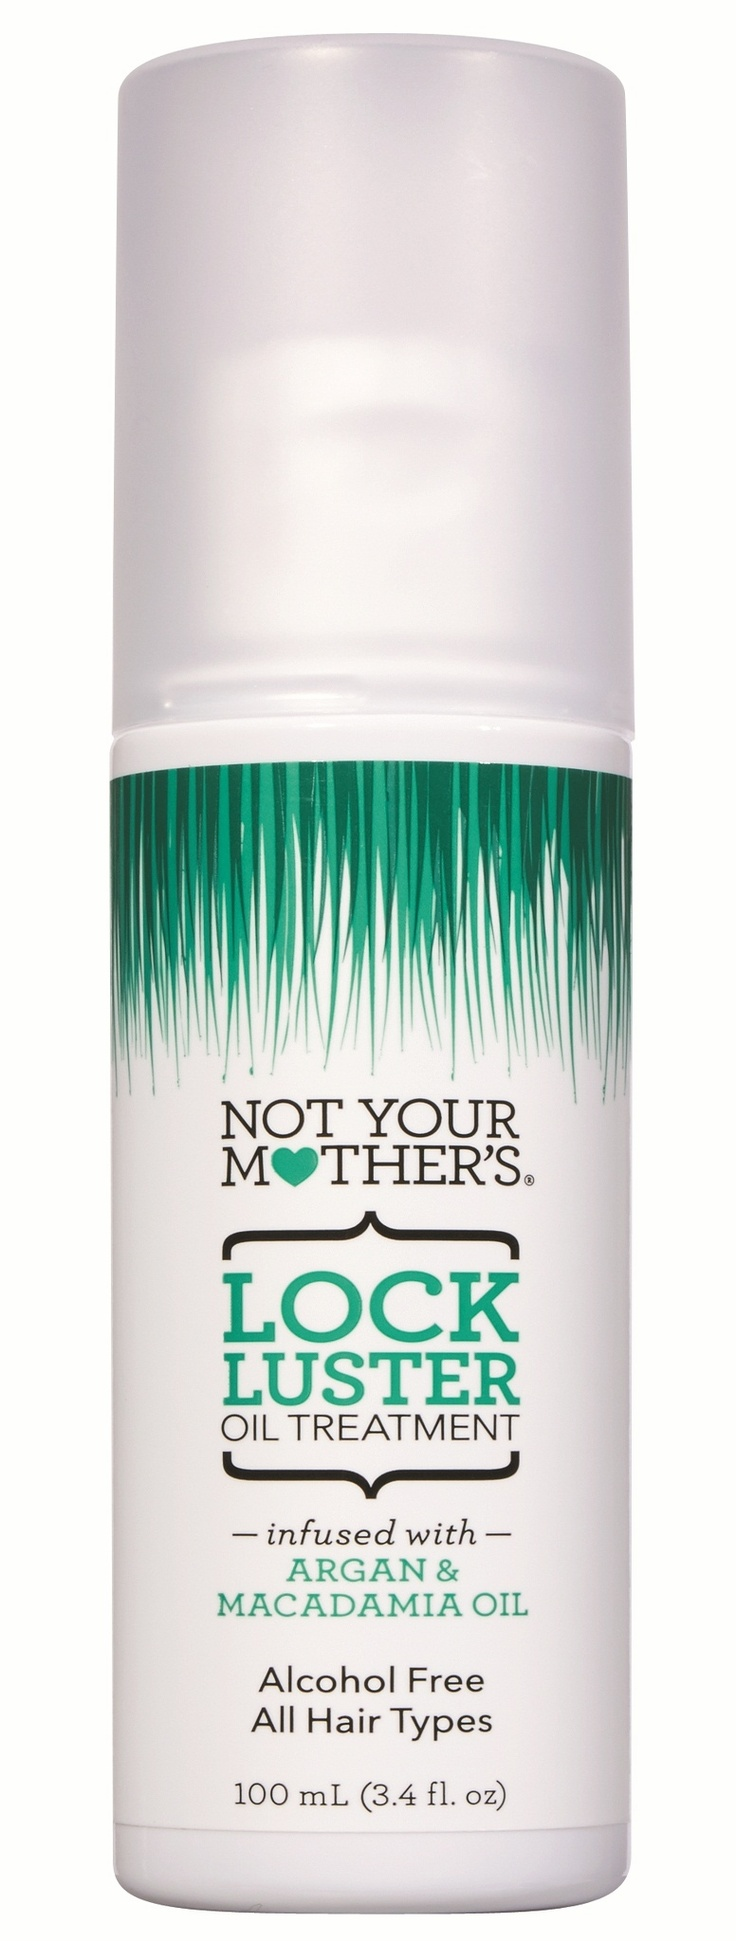 Infused with argan & macadamia oils -Alcohol free - For all hair types Pour a small amount into palms. Work into hair from tips to roots - sparingly at roots. Style as desired for smooth, healthy, lustrous hair. $6 http://www.customnails.com/notyomololuo.html